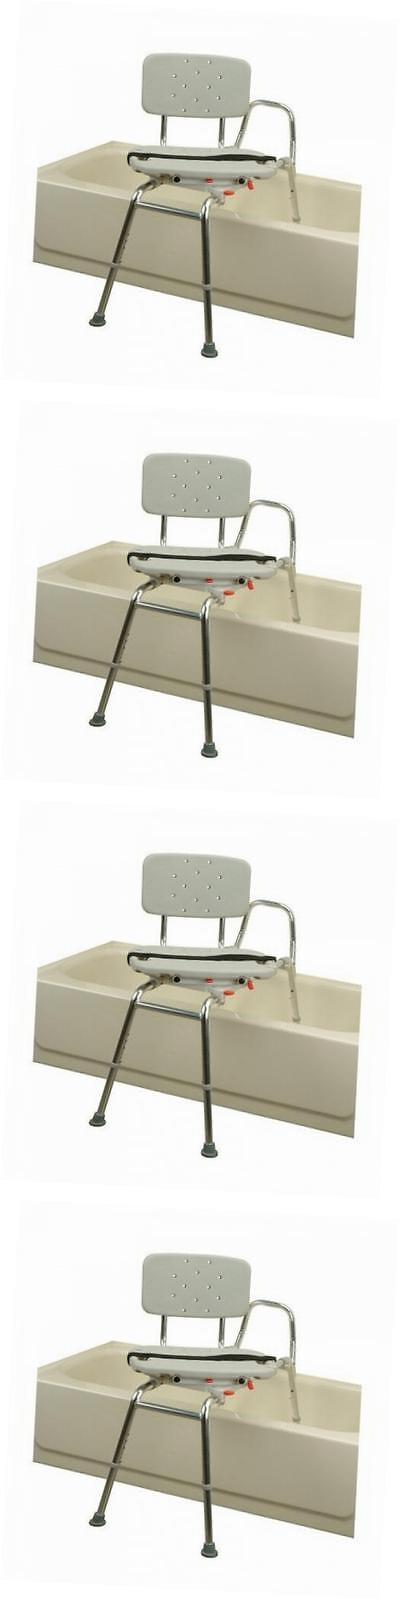 Transfer Boards and Benches: Eagle Swivel Seat Sliding Bath Transfer ...